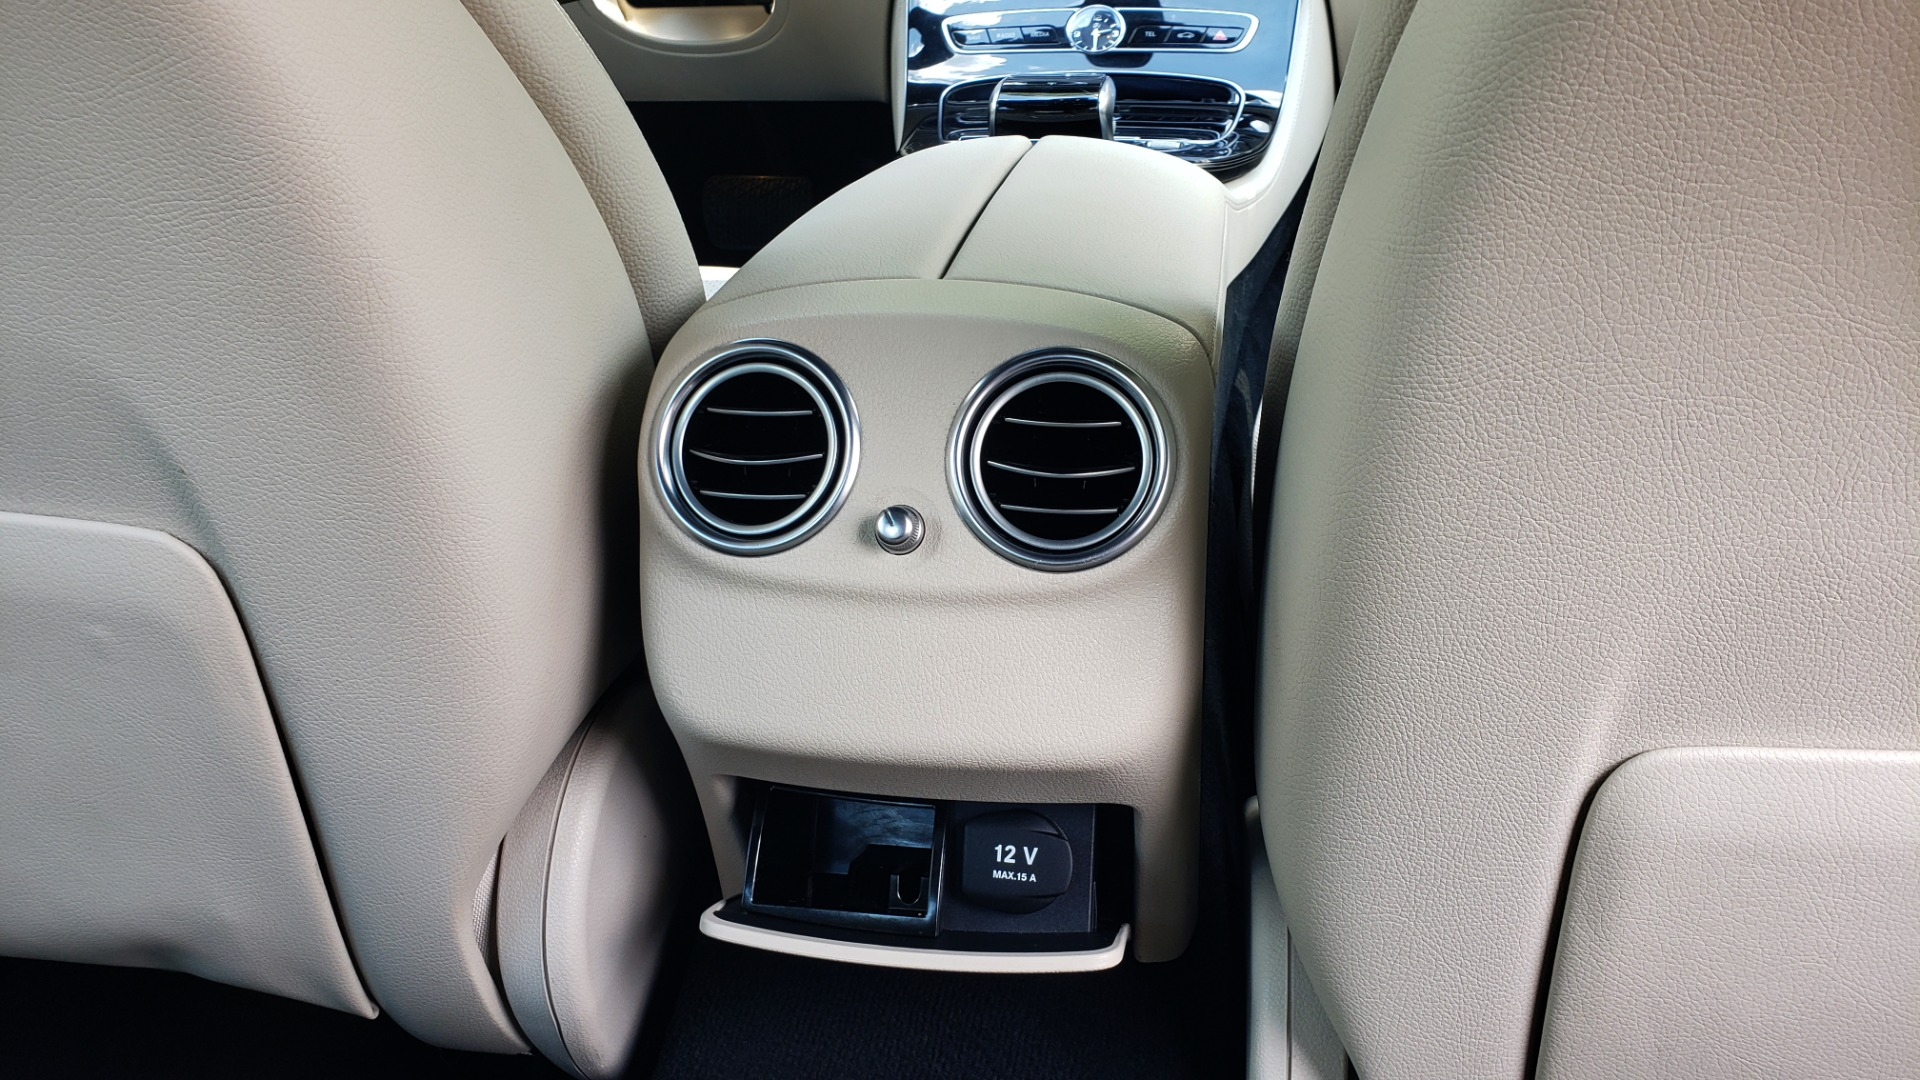 Used 2017 Mercedes-Benz E-CLASS E 300 PREMIUM / SPORT / NAV / SUNROOF / HTD STS / BSM / REARVIEW for sale $27,995 at Formula Imports in Charlotte NC 28227 73